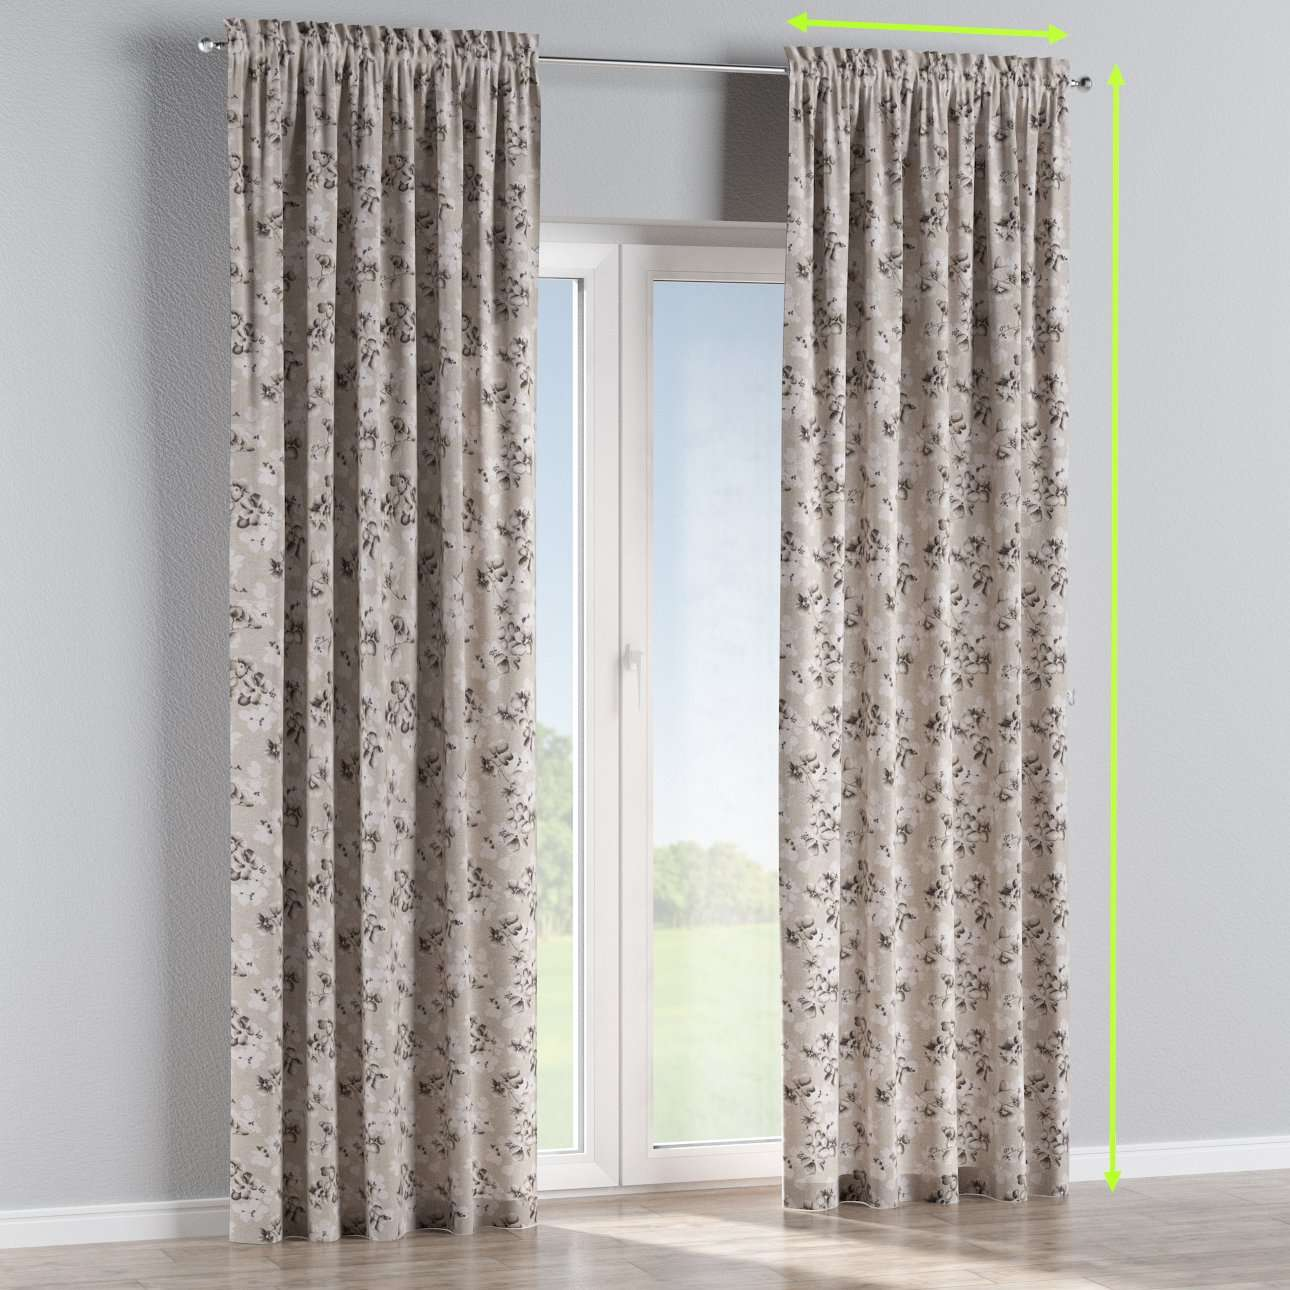 Slot and frill lined curtains in collection Rustica, fabric: 138-14